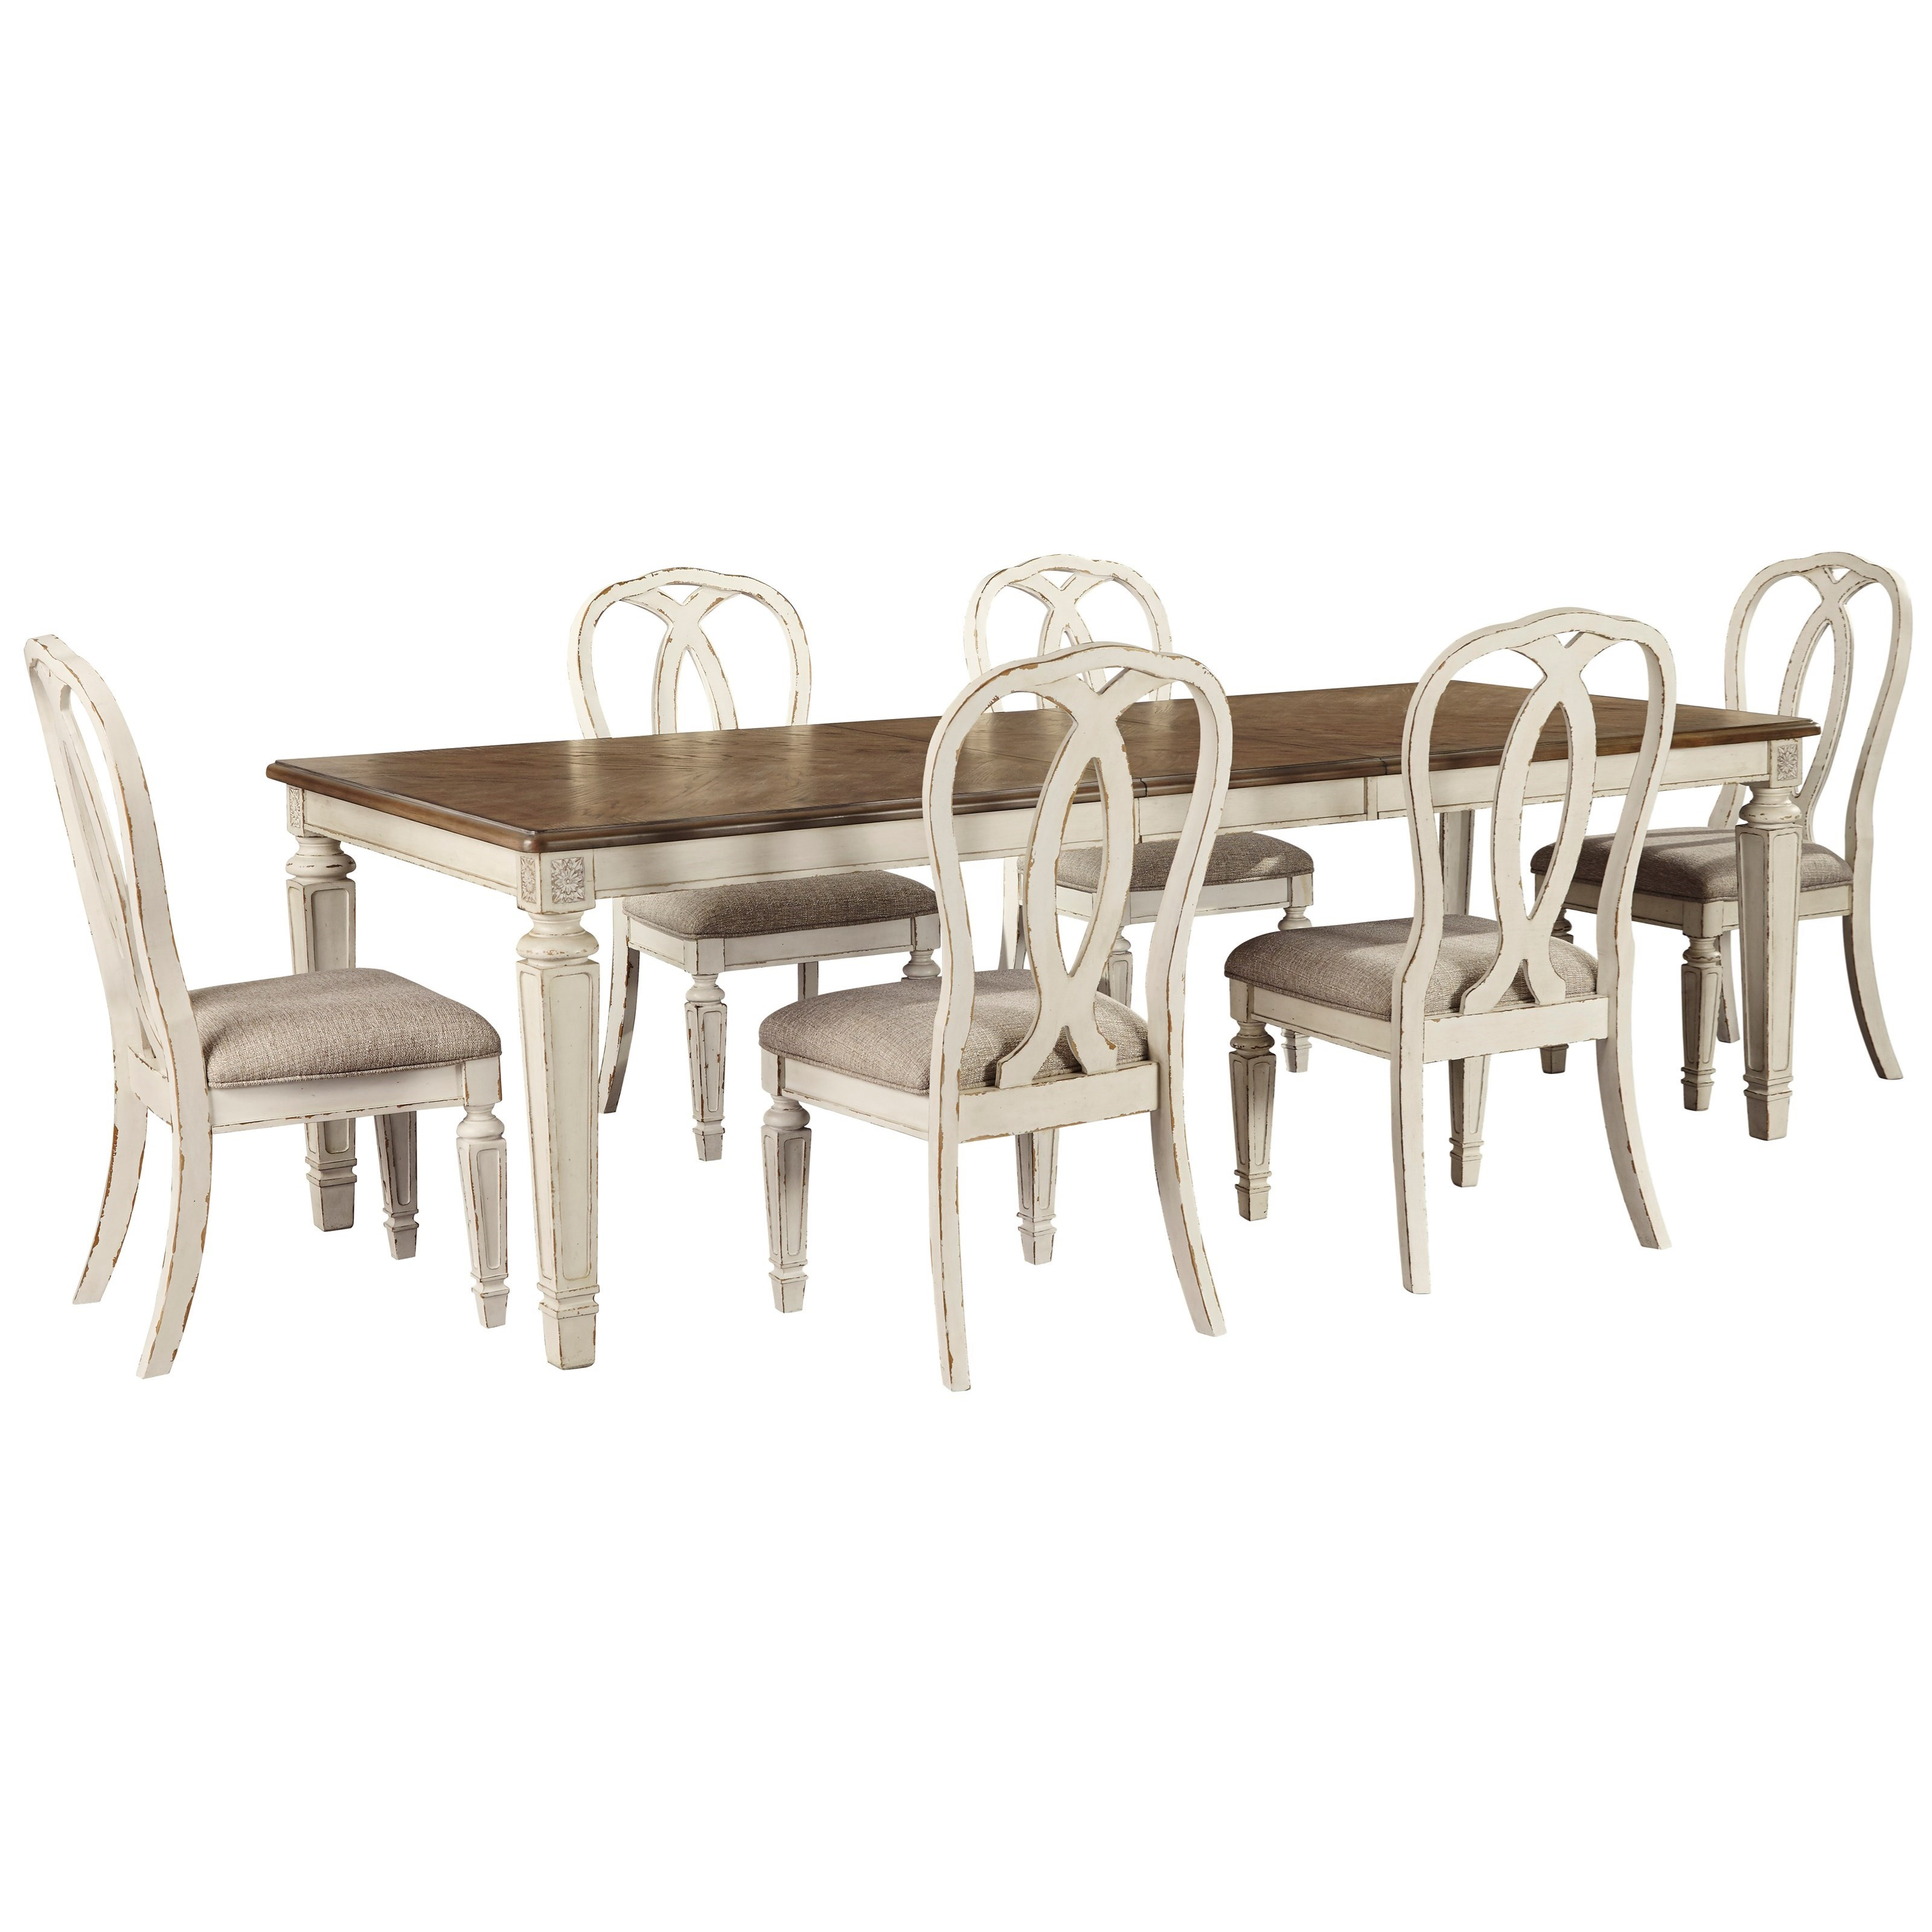 Realyn 7-Piece Rectangular Table and Chair Set by Ashley (Signature Design) at Johnny Janosik